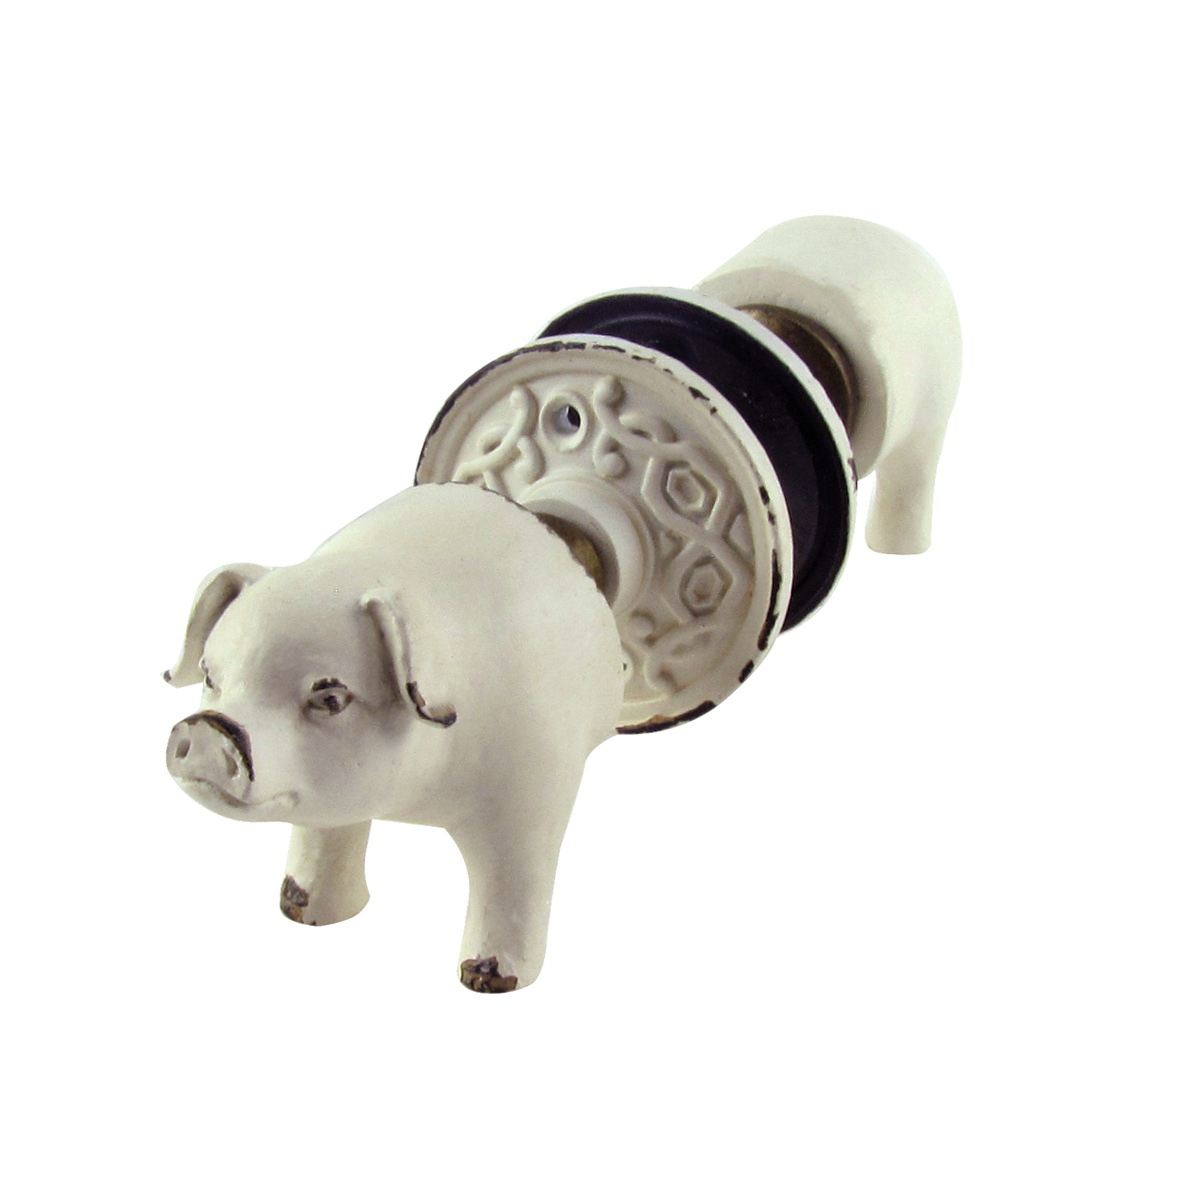 Pig Noseu0026Tail Antique Door Knob Set/2 Knobs Rustic Kitchen Pantry/Closet  Decor